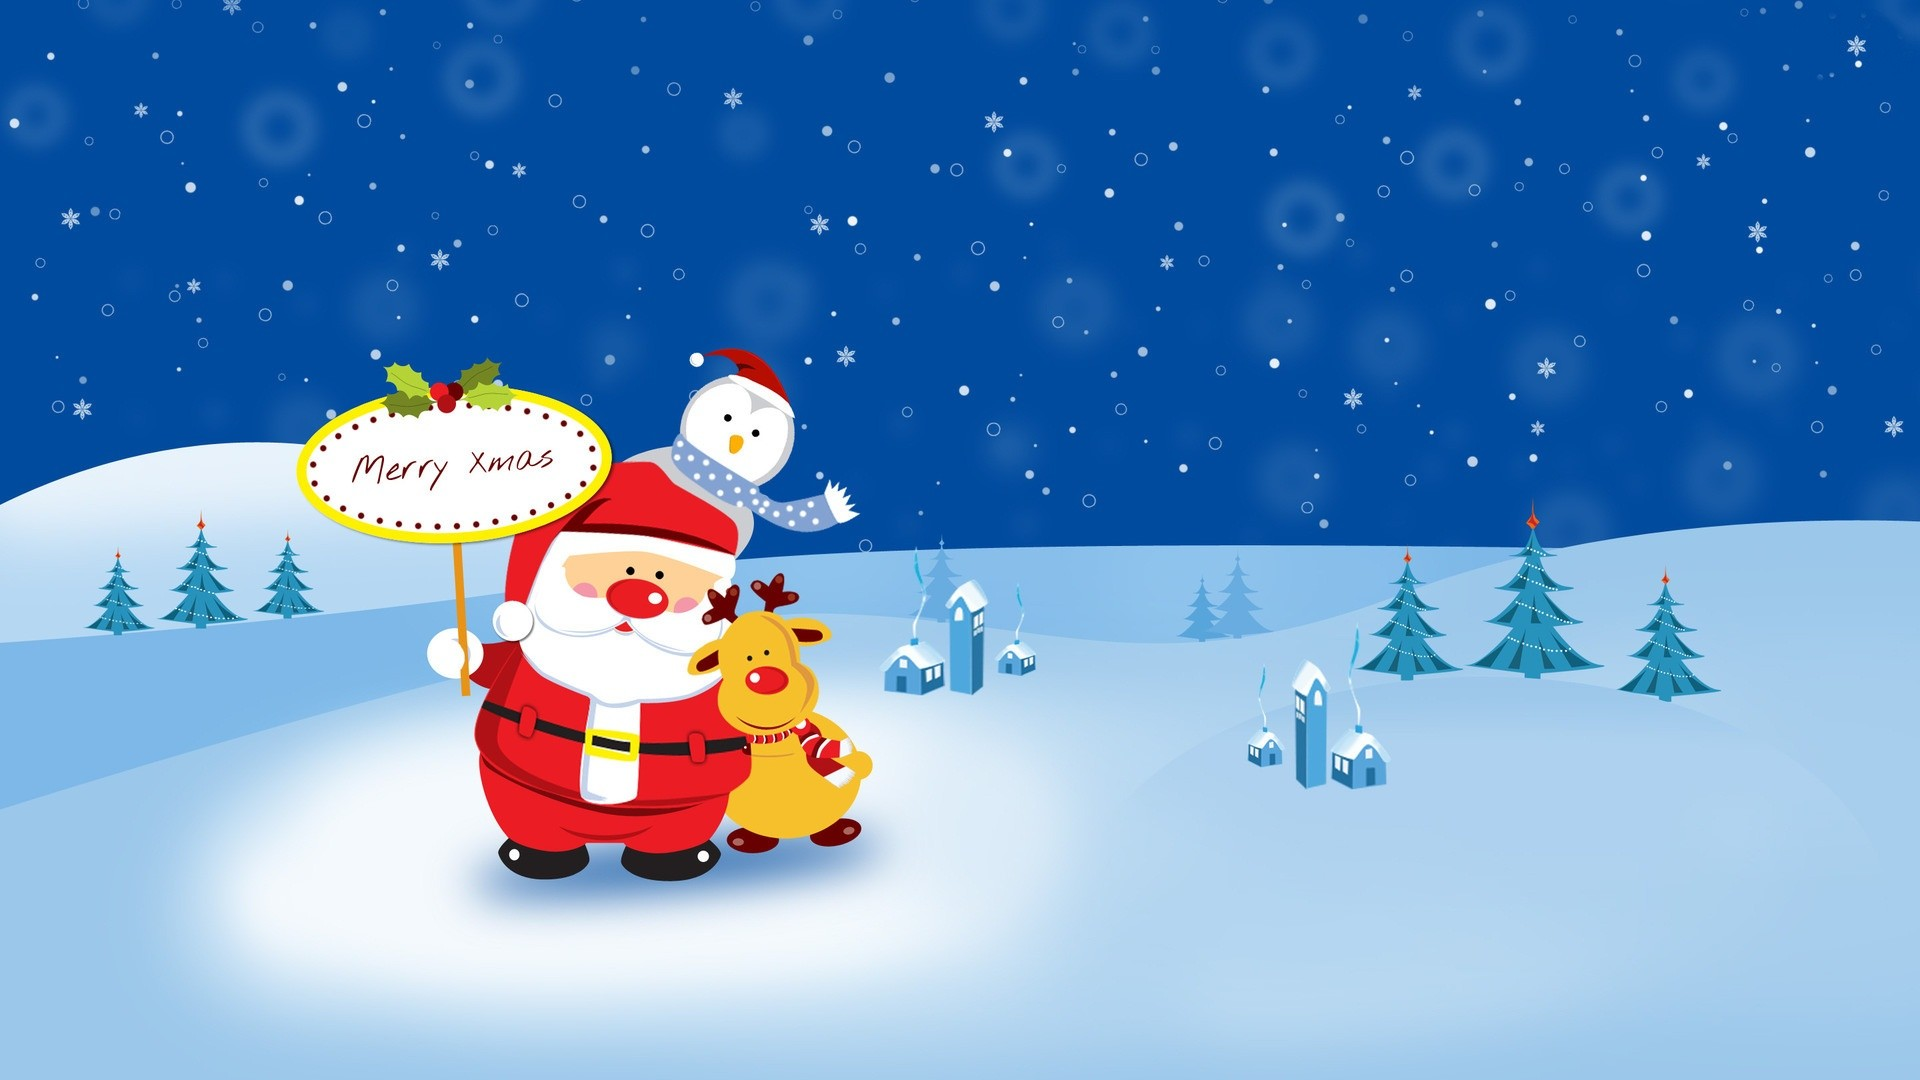 1920x1080 Animated Christmas Wallpapers Free Download 12